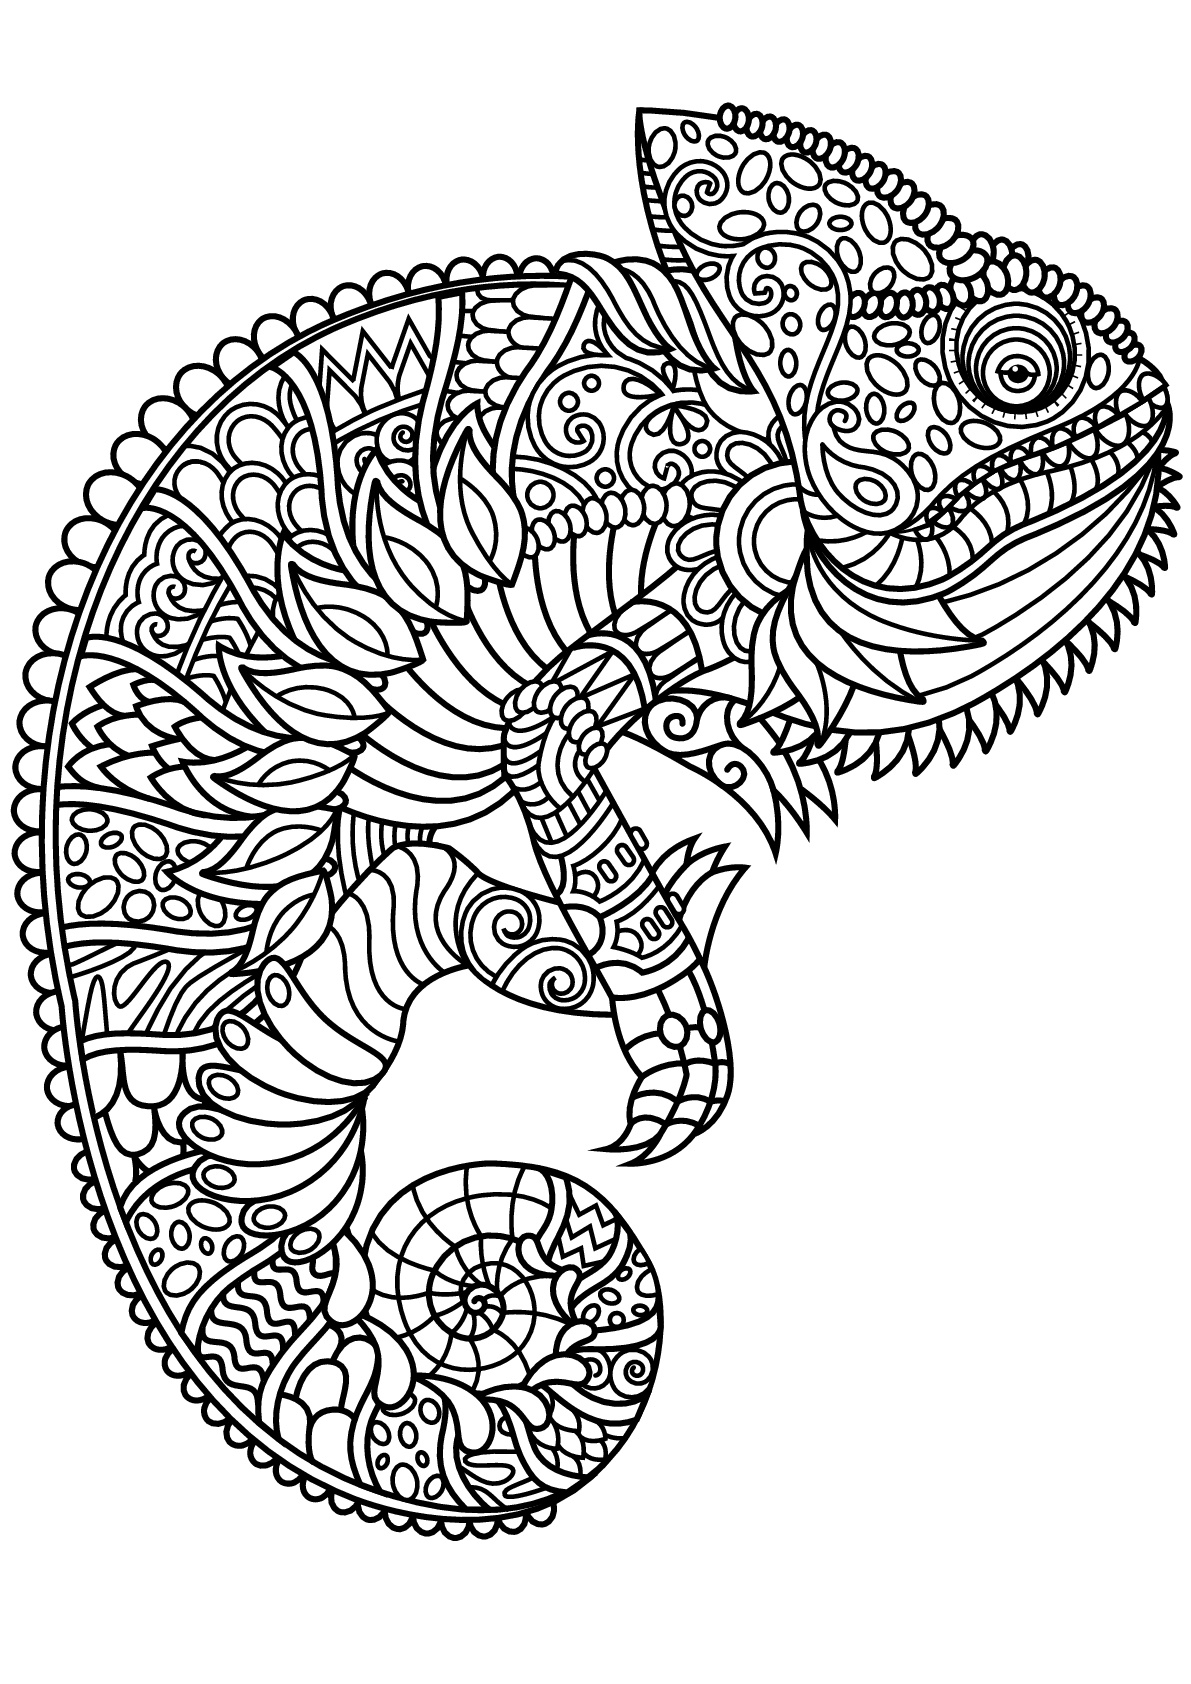 Free book chameleon - Chameleons & lizards Adult Coloring Pages